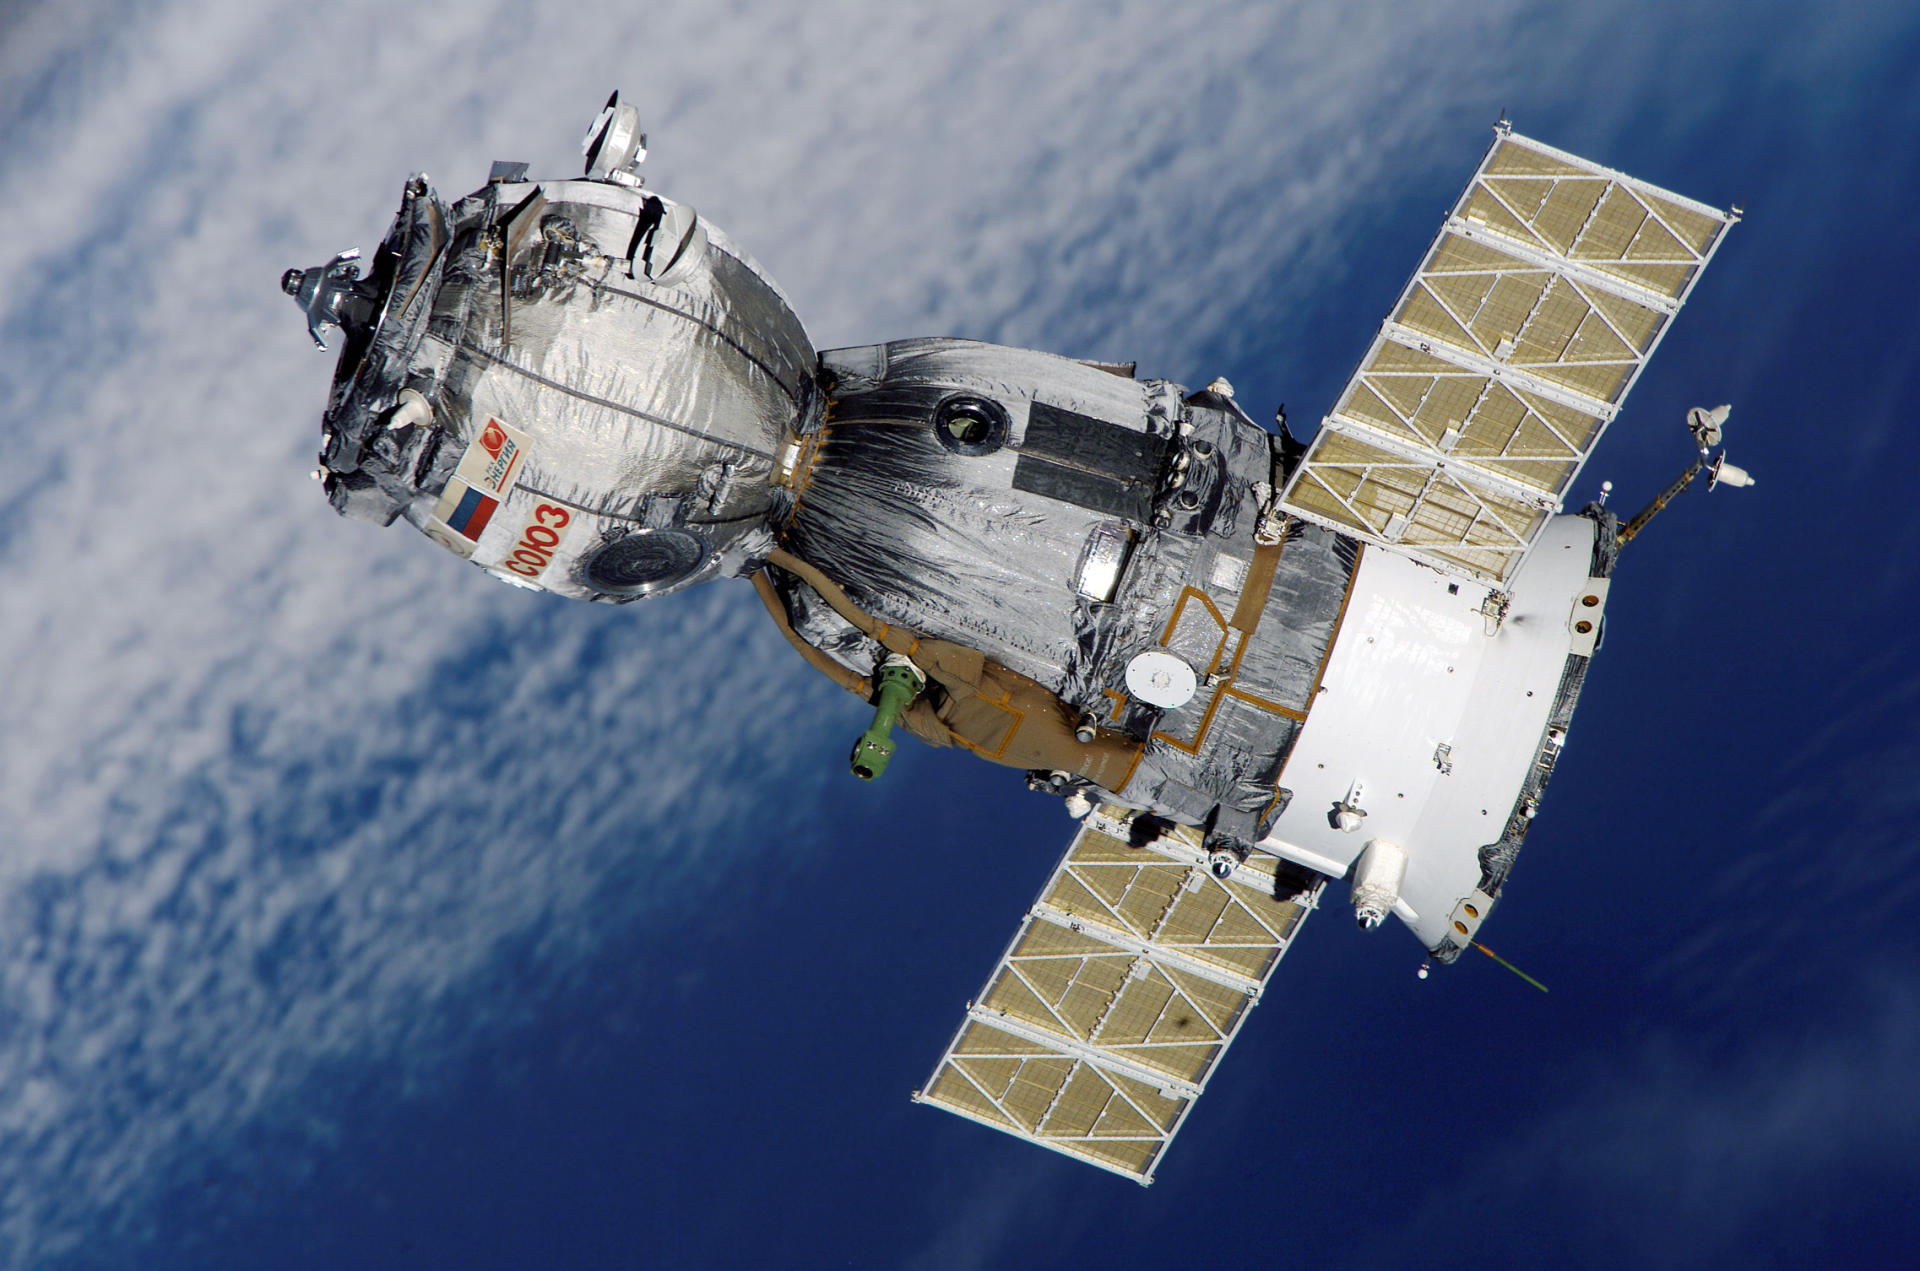 Russia to halve number of piloted missions to ISS in 2020